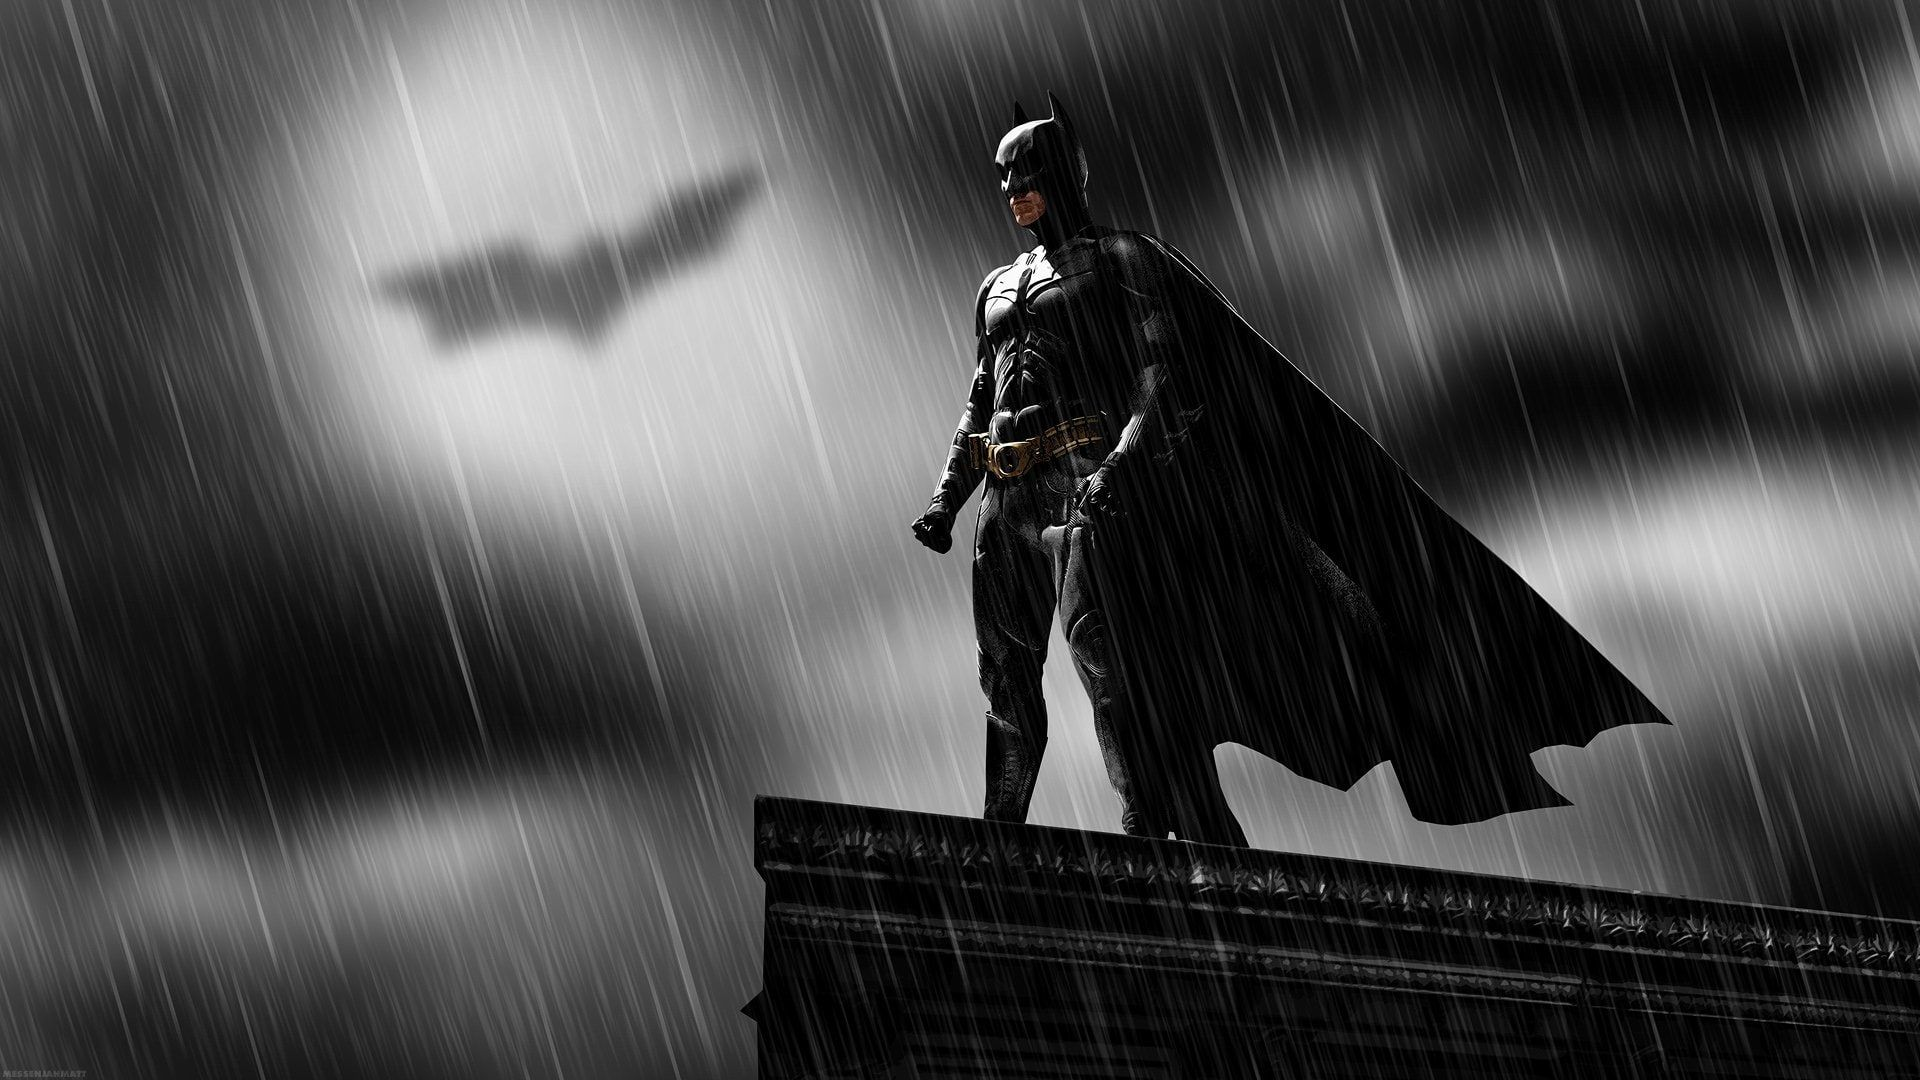 Black Hd Wallpapers 1080p Widescreen Wallpapers Backgrounds Images Art Photos Dark Knight Wallpaper Black Hd Wallpaper Dark Wallpaper